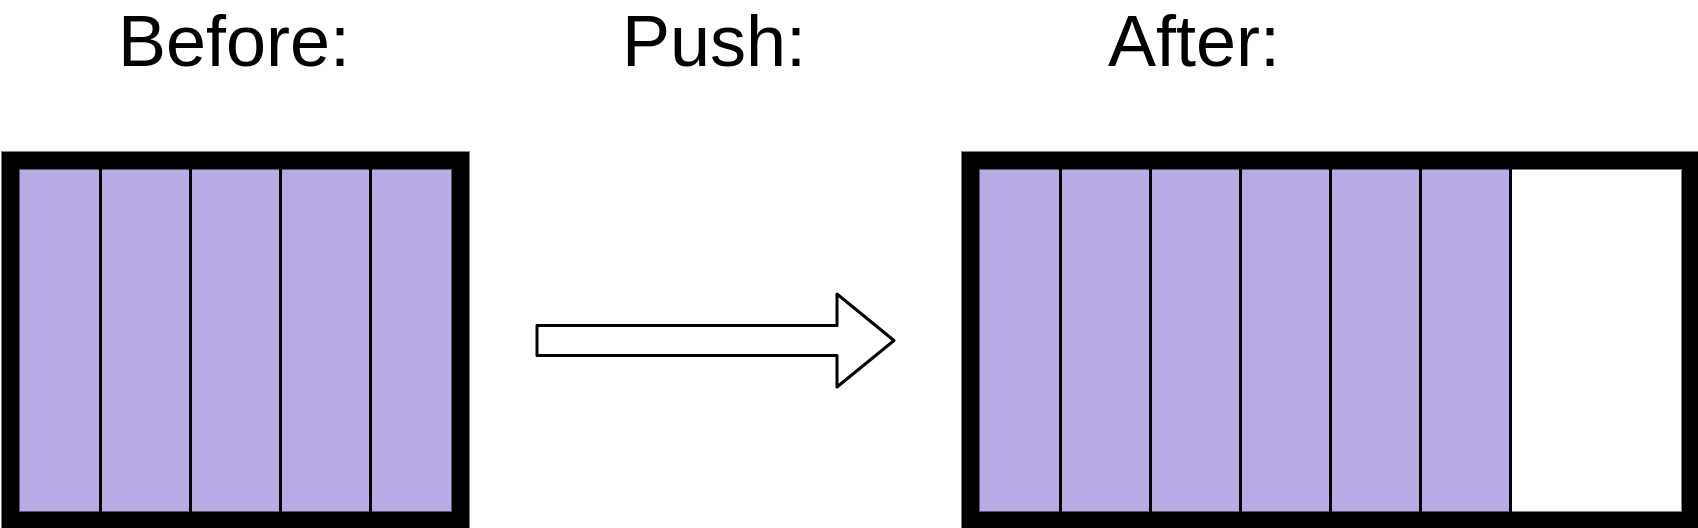 Memory structure of a list pushing a new element